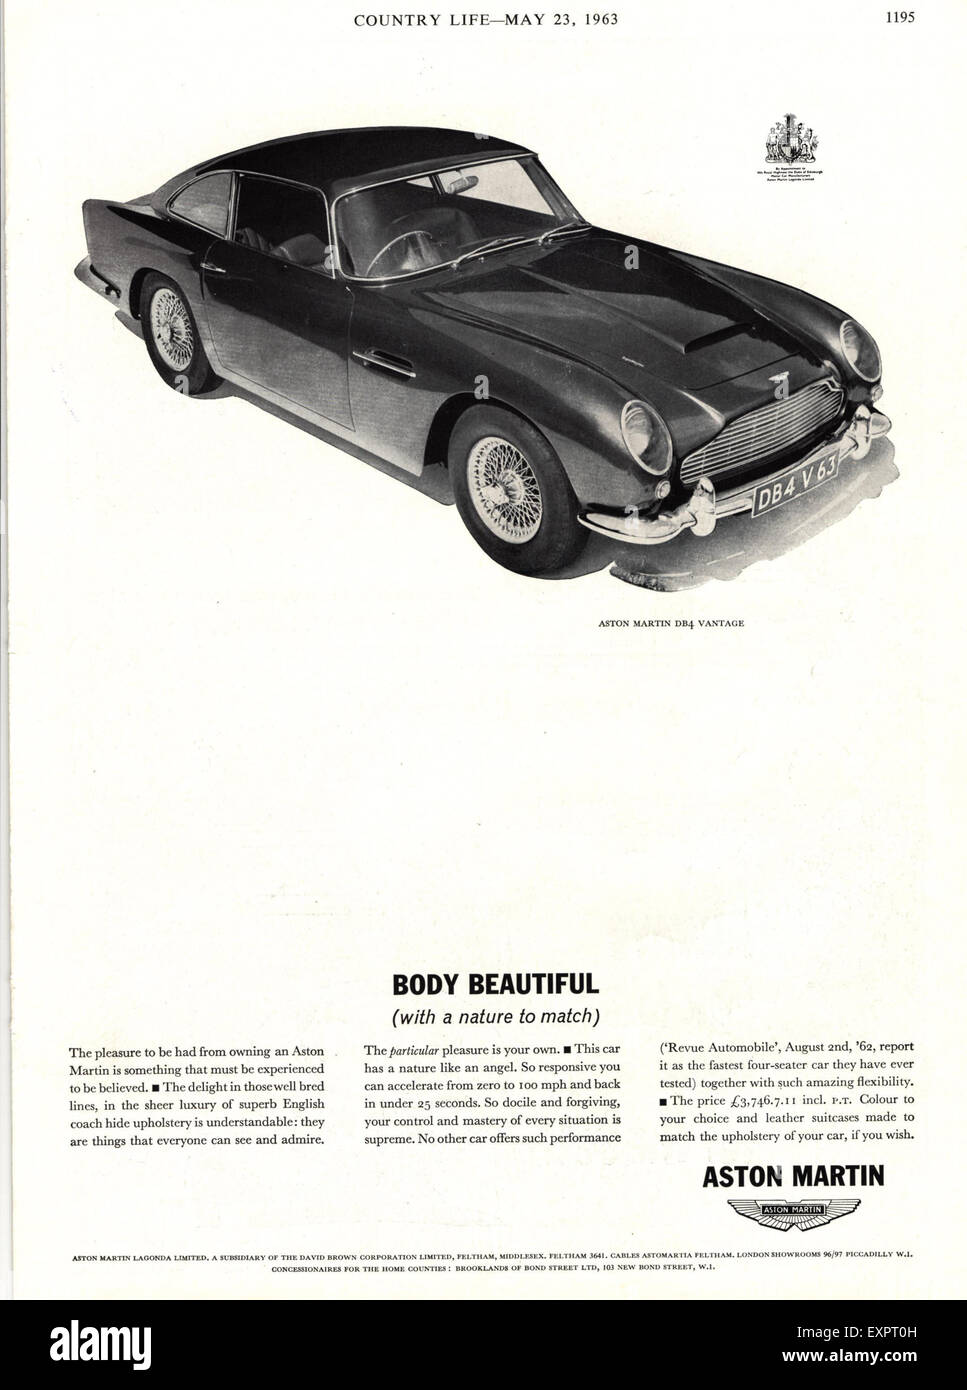 1960s uk aston martin magazine advert stock photo: 85324305 - alamy